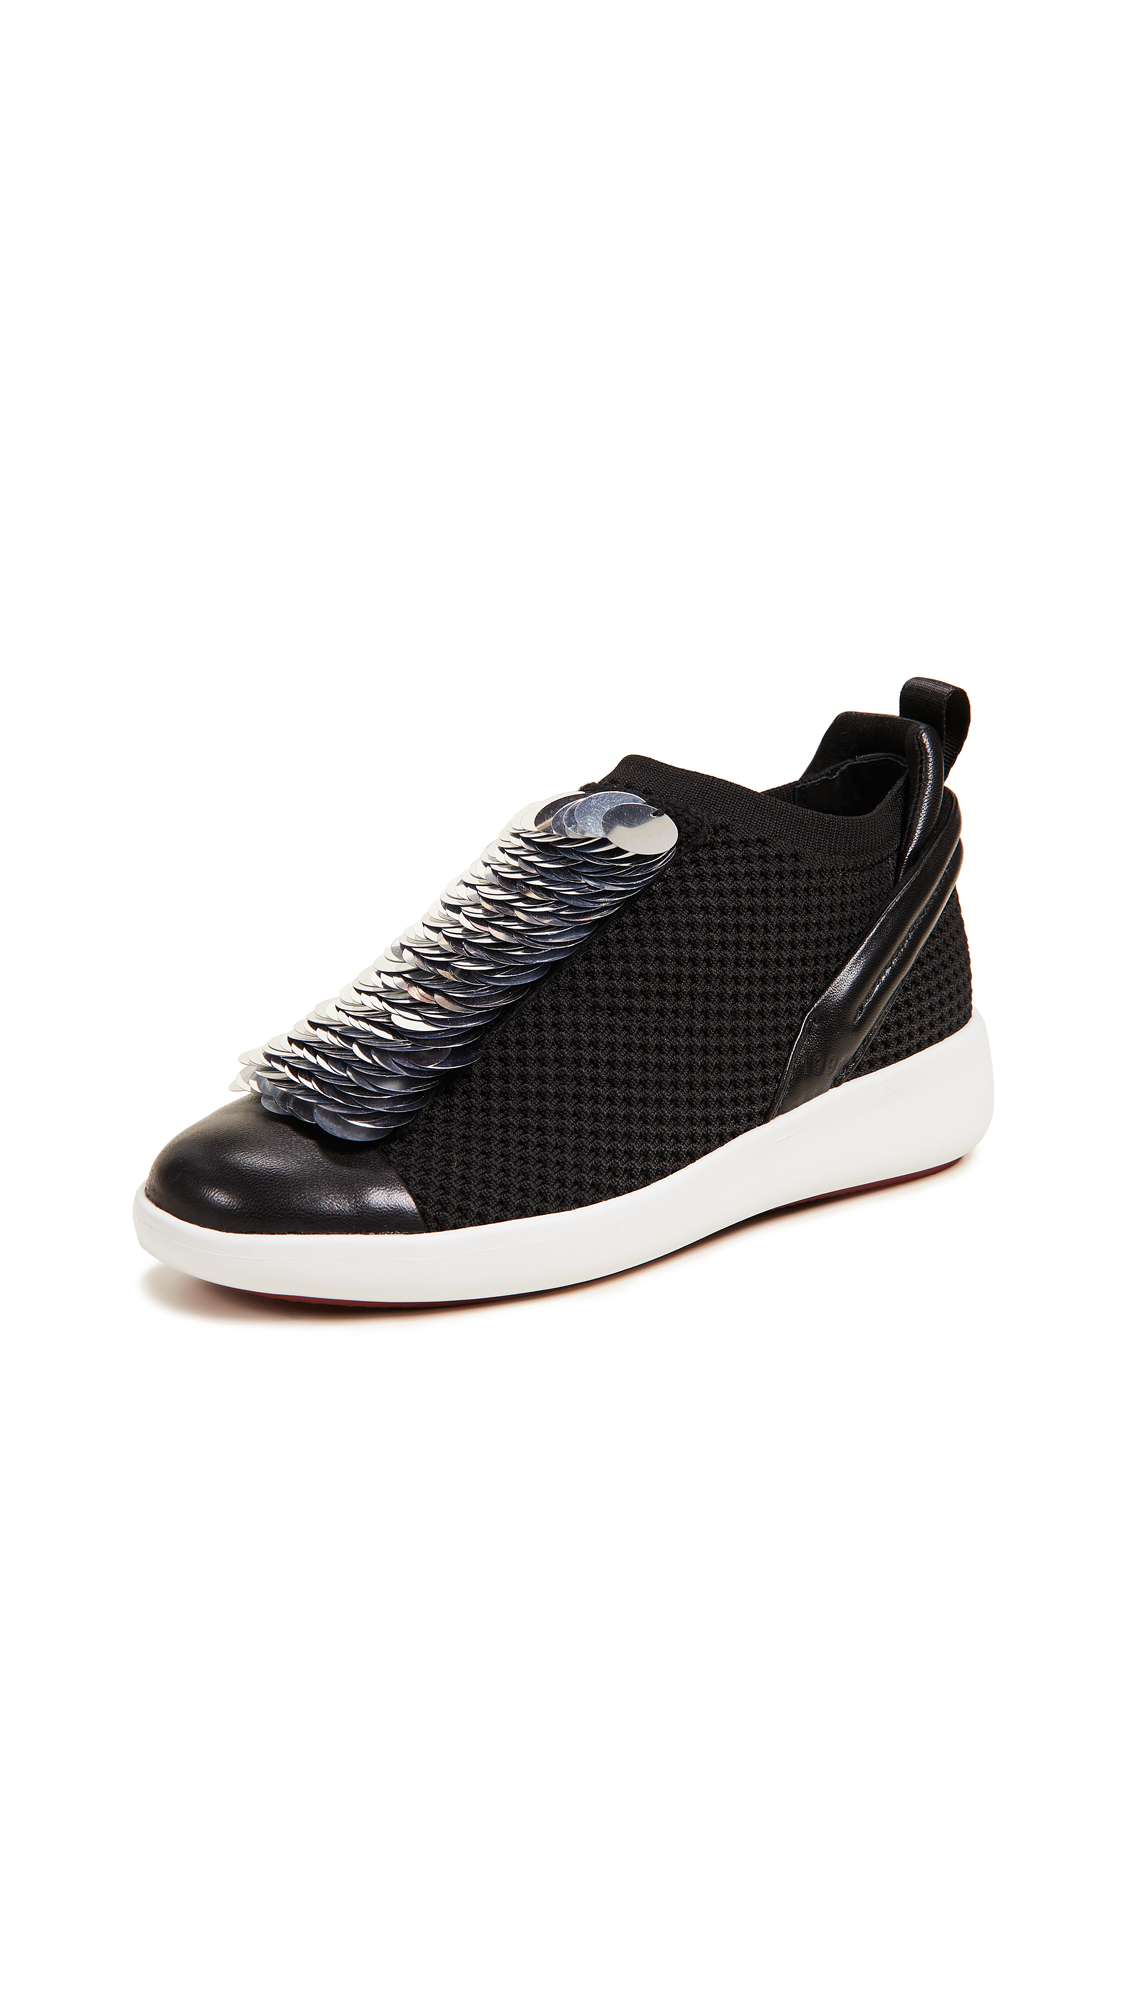 CLONE Moonstone Sneakers - Black/Silver